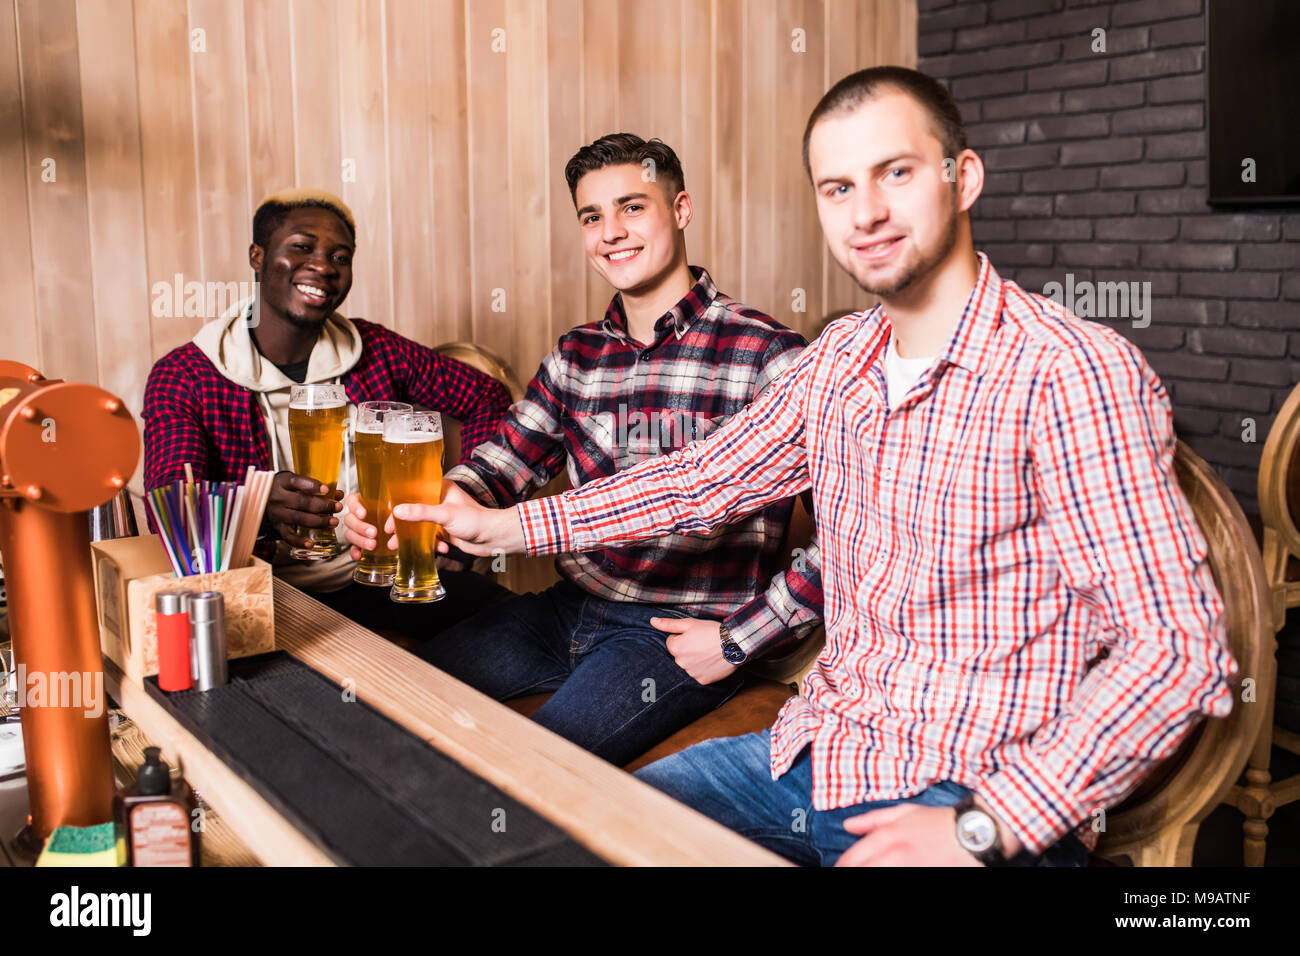 Cheerful old friends having fun and drinking draft beer at bar counter in pub. Stock Photo